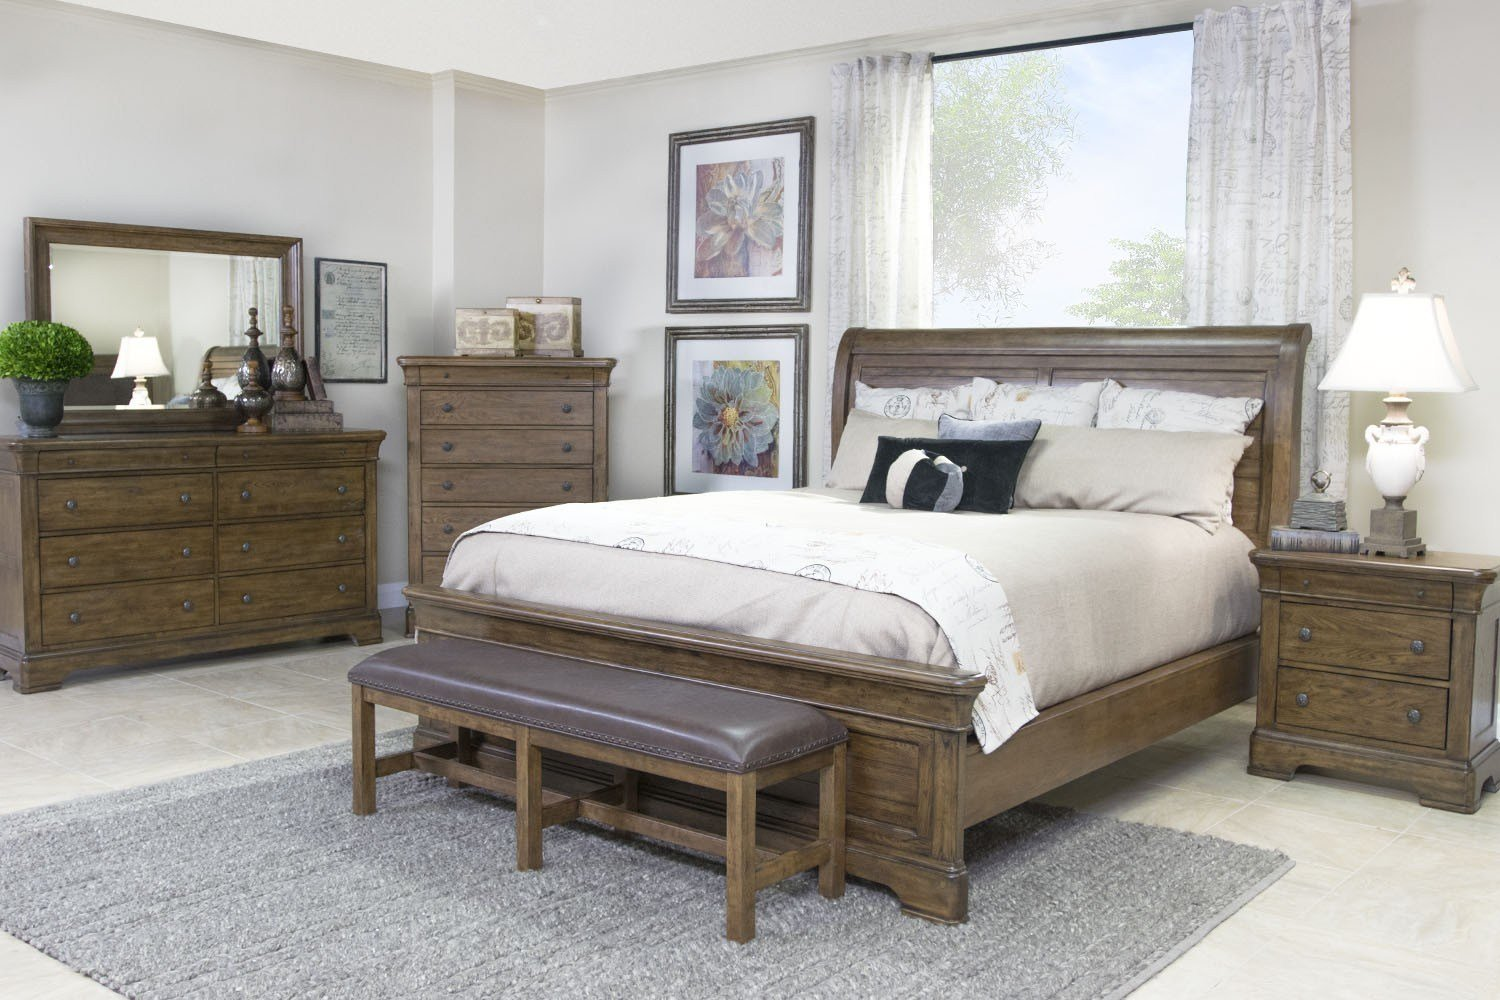 Best American Bedroom Sets Mor Furniture For Less The American Attitude Bedroom Mor Mor For Less With Pictures